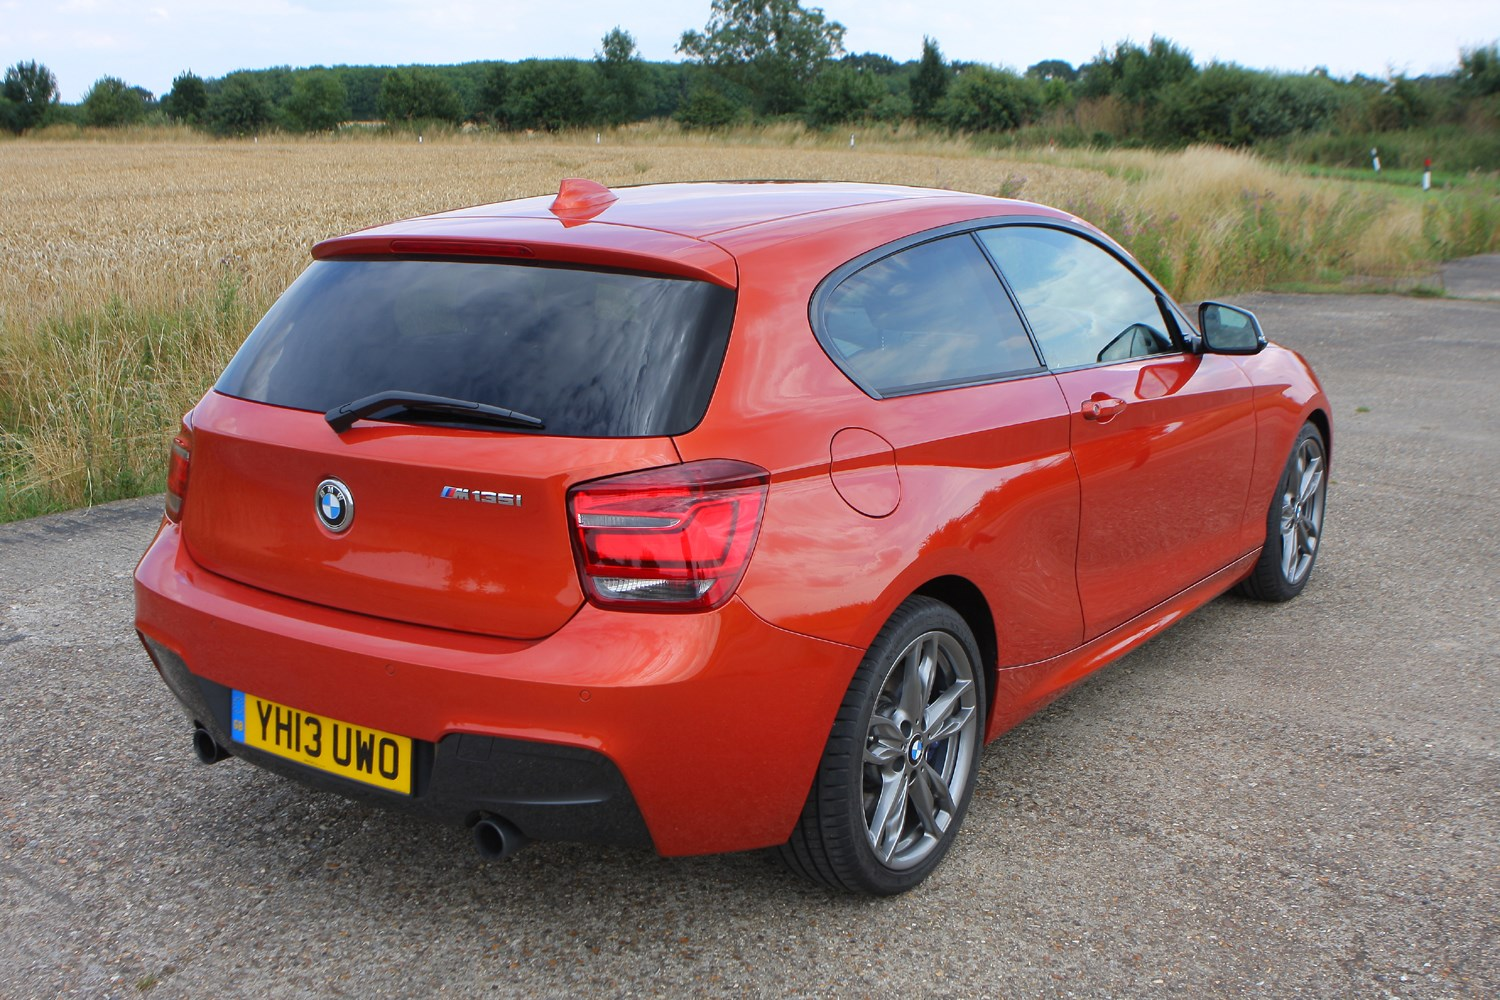 Bmw 1 Series Hatchback 2011 Photos Parkers